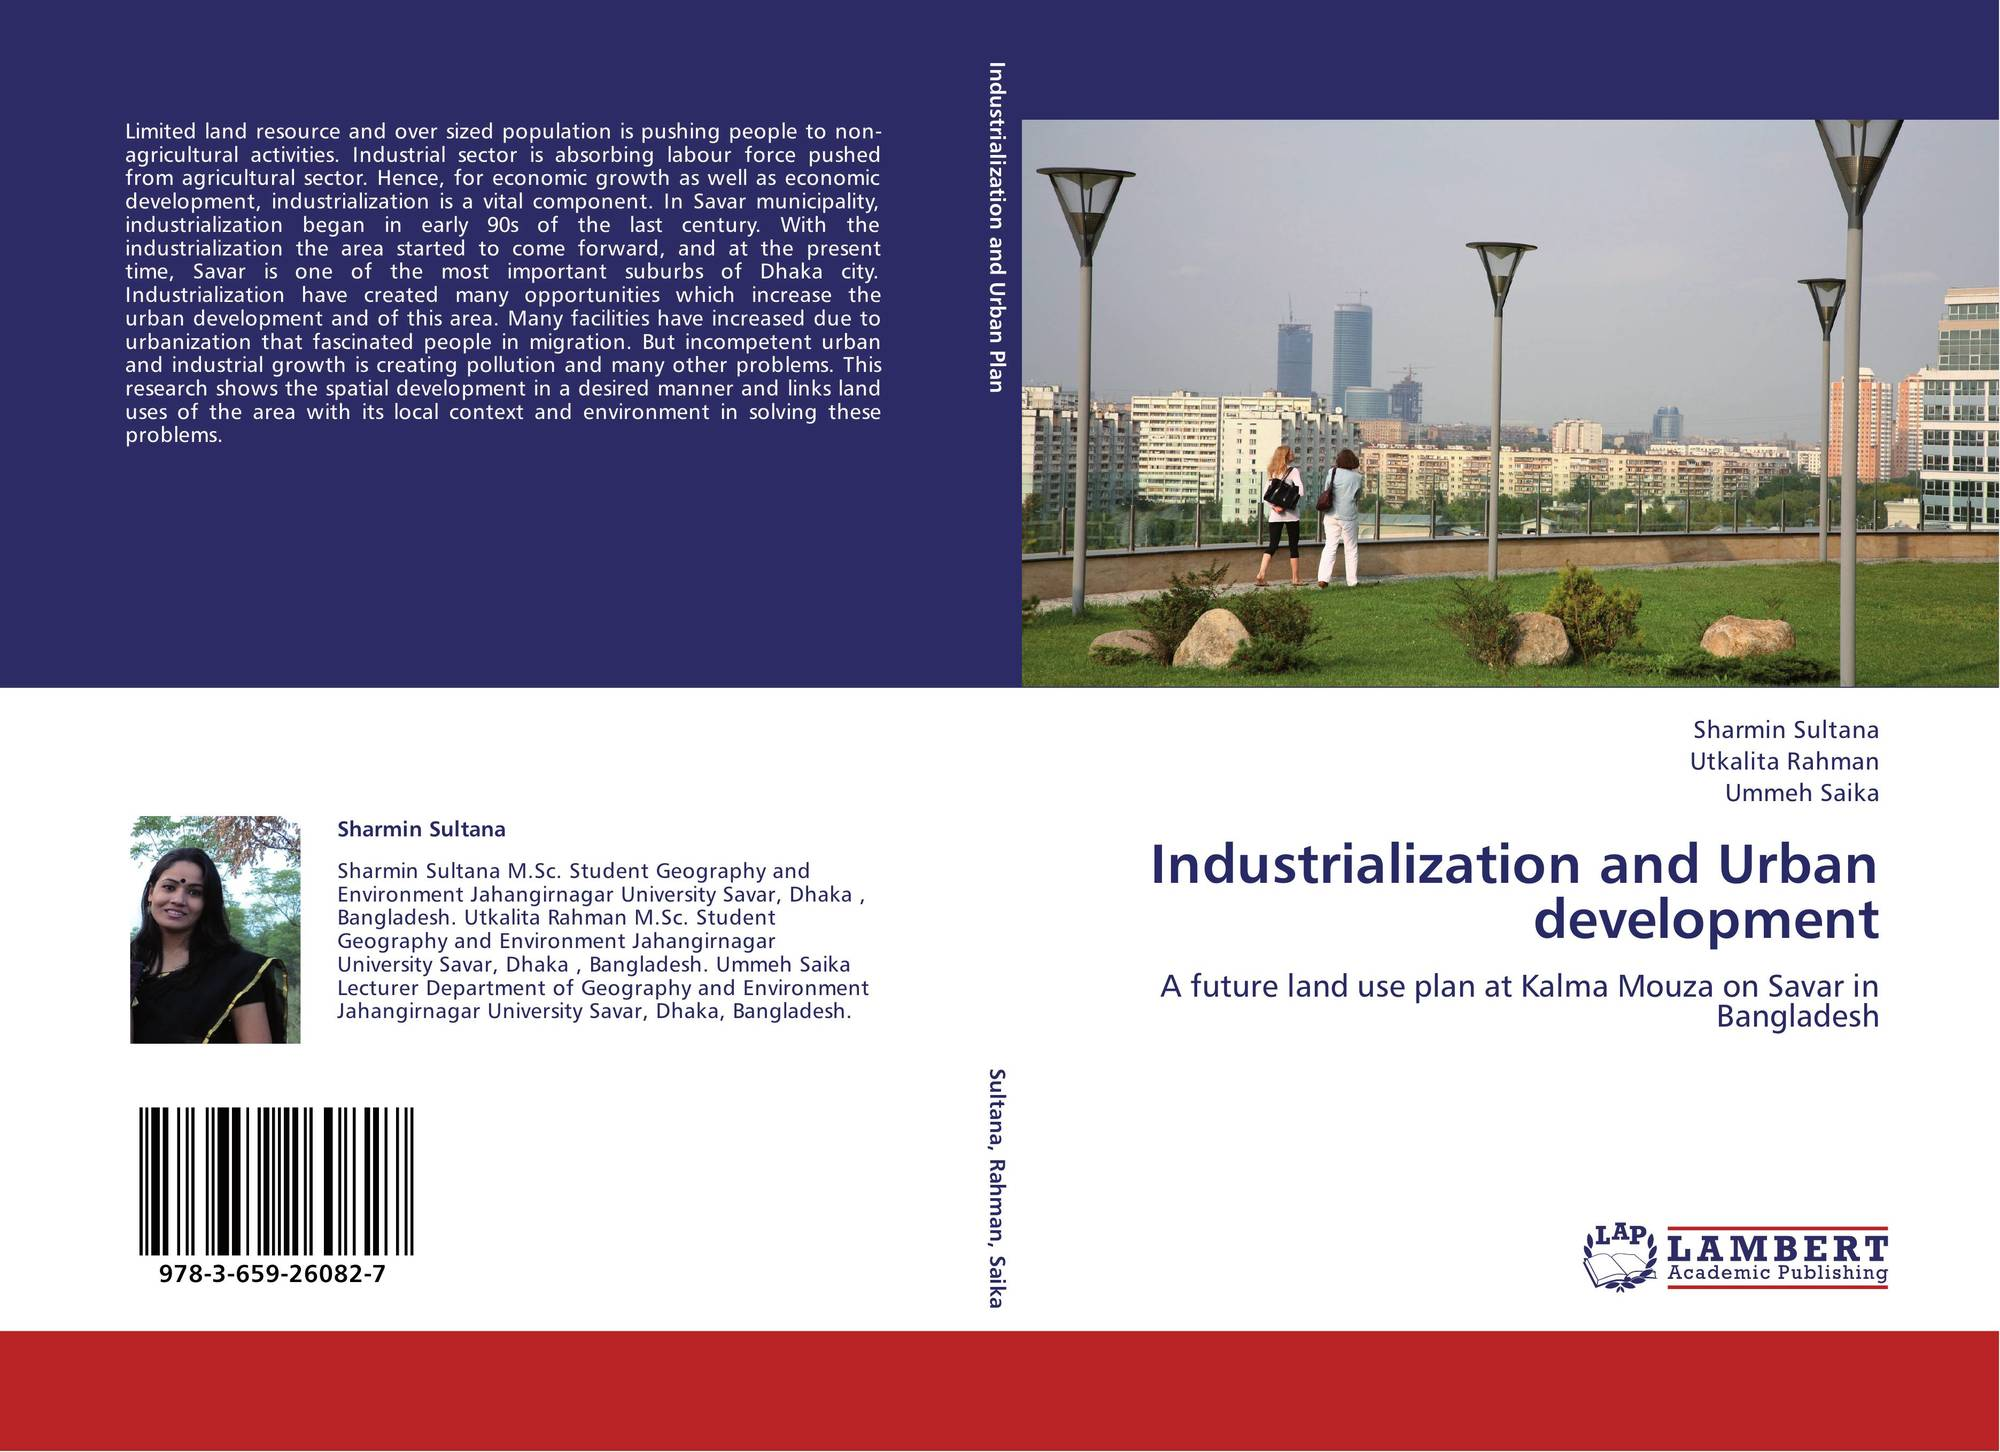 industrialization economics and the environment 295 industrial development and economic growth: implications for poverty reduction and income inequality matleena kniivilä 1 introduction the share of poor people in the global population has.